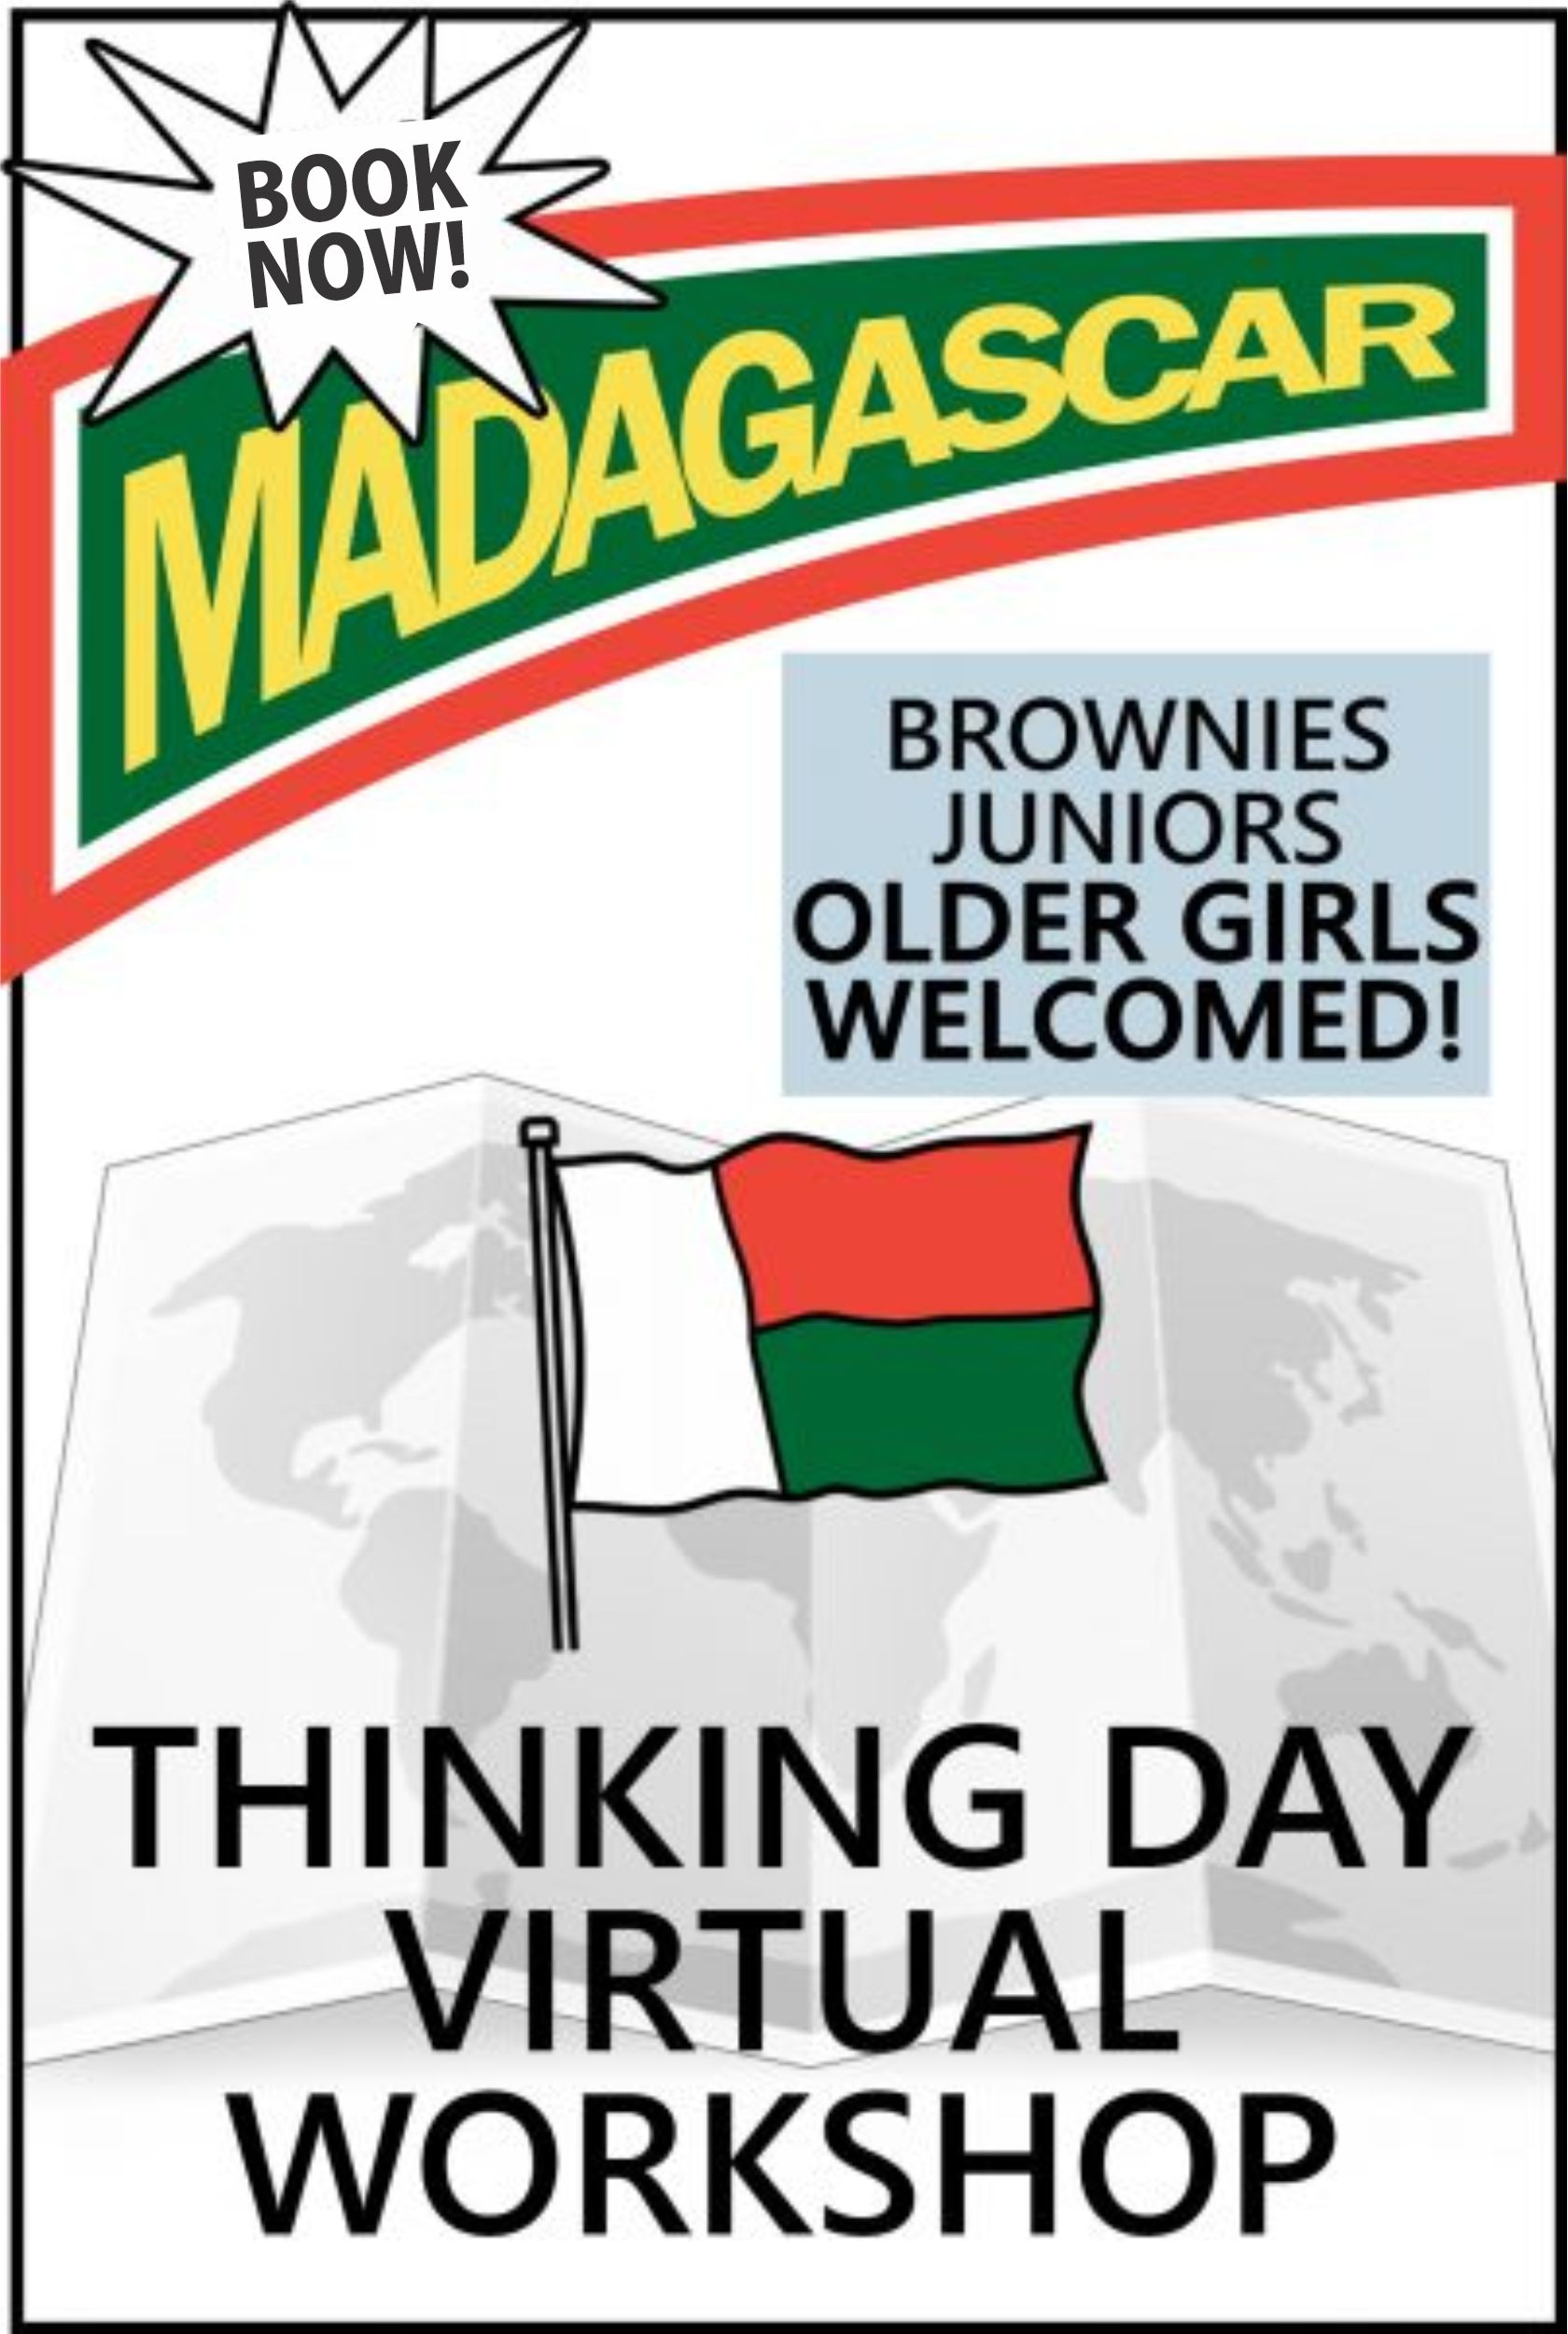 Explore the traditions, food, clothing, and customs of Madagascar. The price includes supplies and an embroidered patch! #makingfriends #thinkingday #madagascar #onlineclass #virtualgirlscouts #virtualthinkingday #juniors #brownies #girlscouts #scouts via @gsleader411